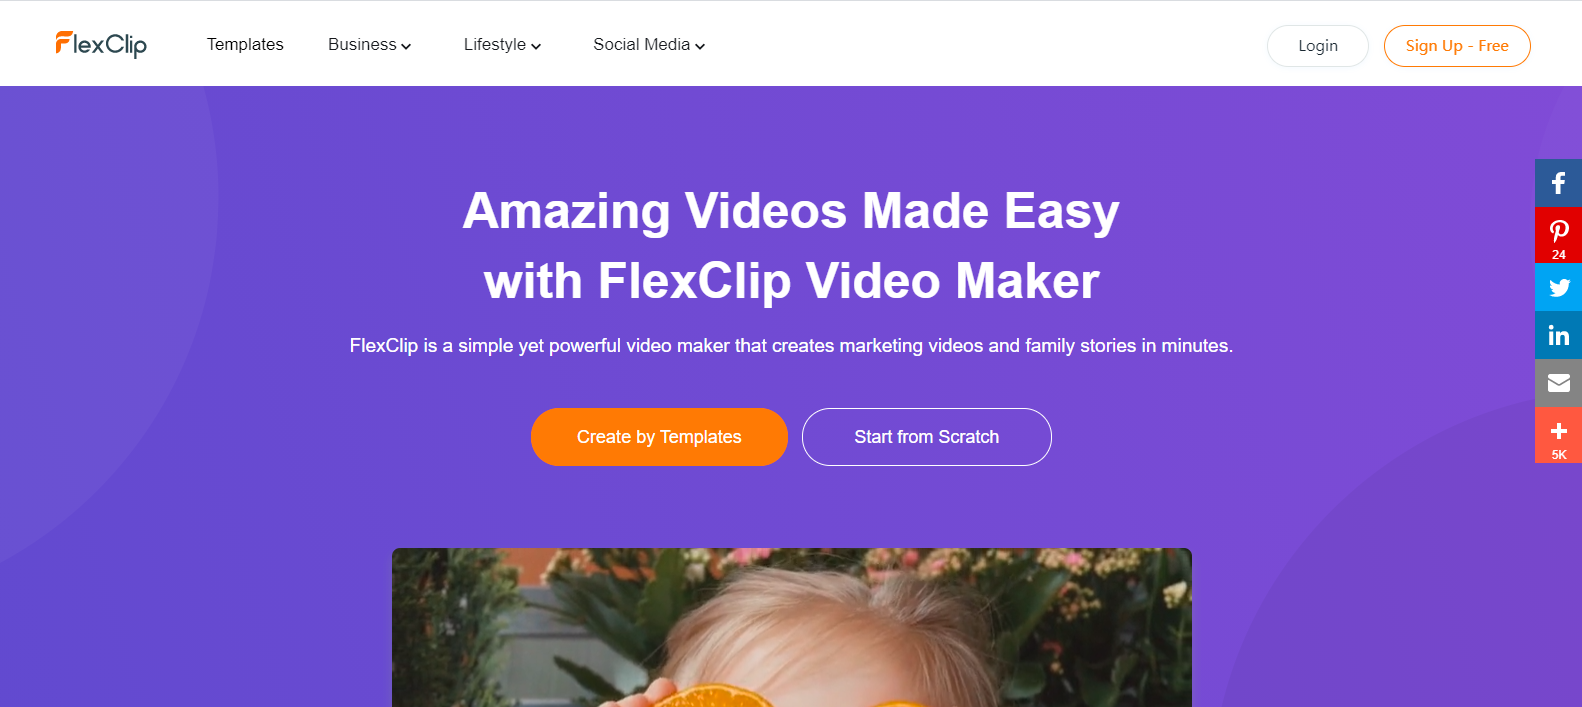 [FlexClip] I searched for an online tool that allows you to edit videos like PowerPoint